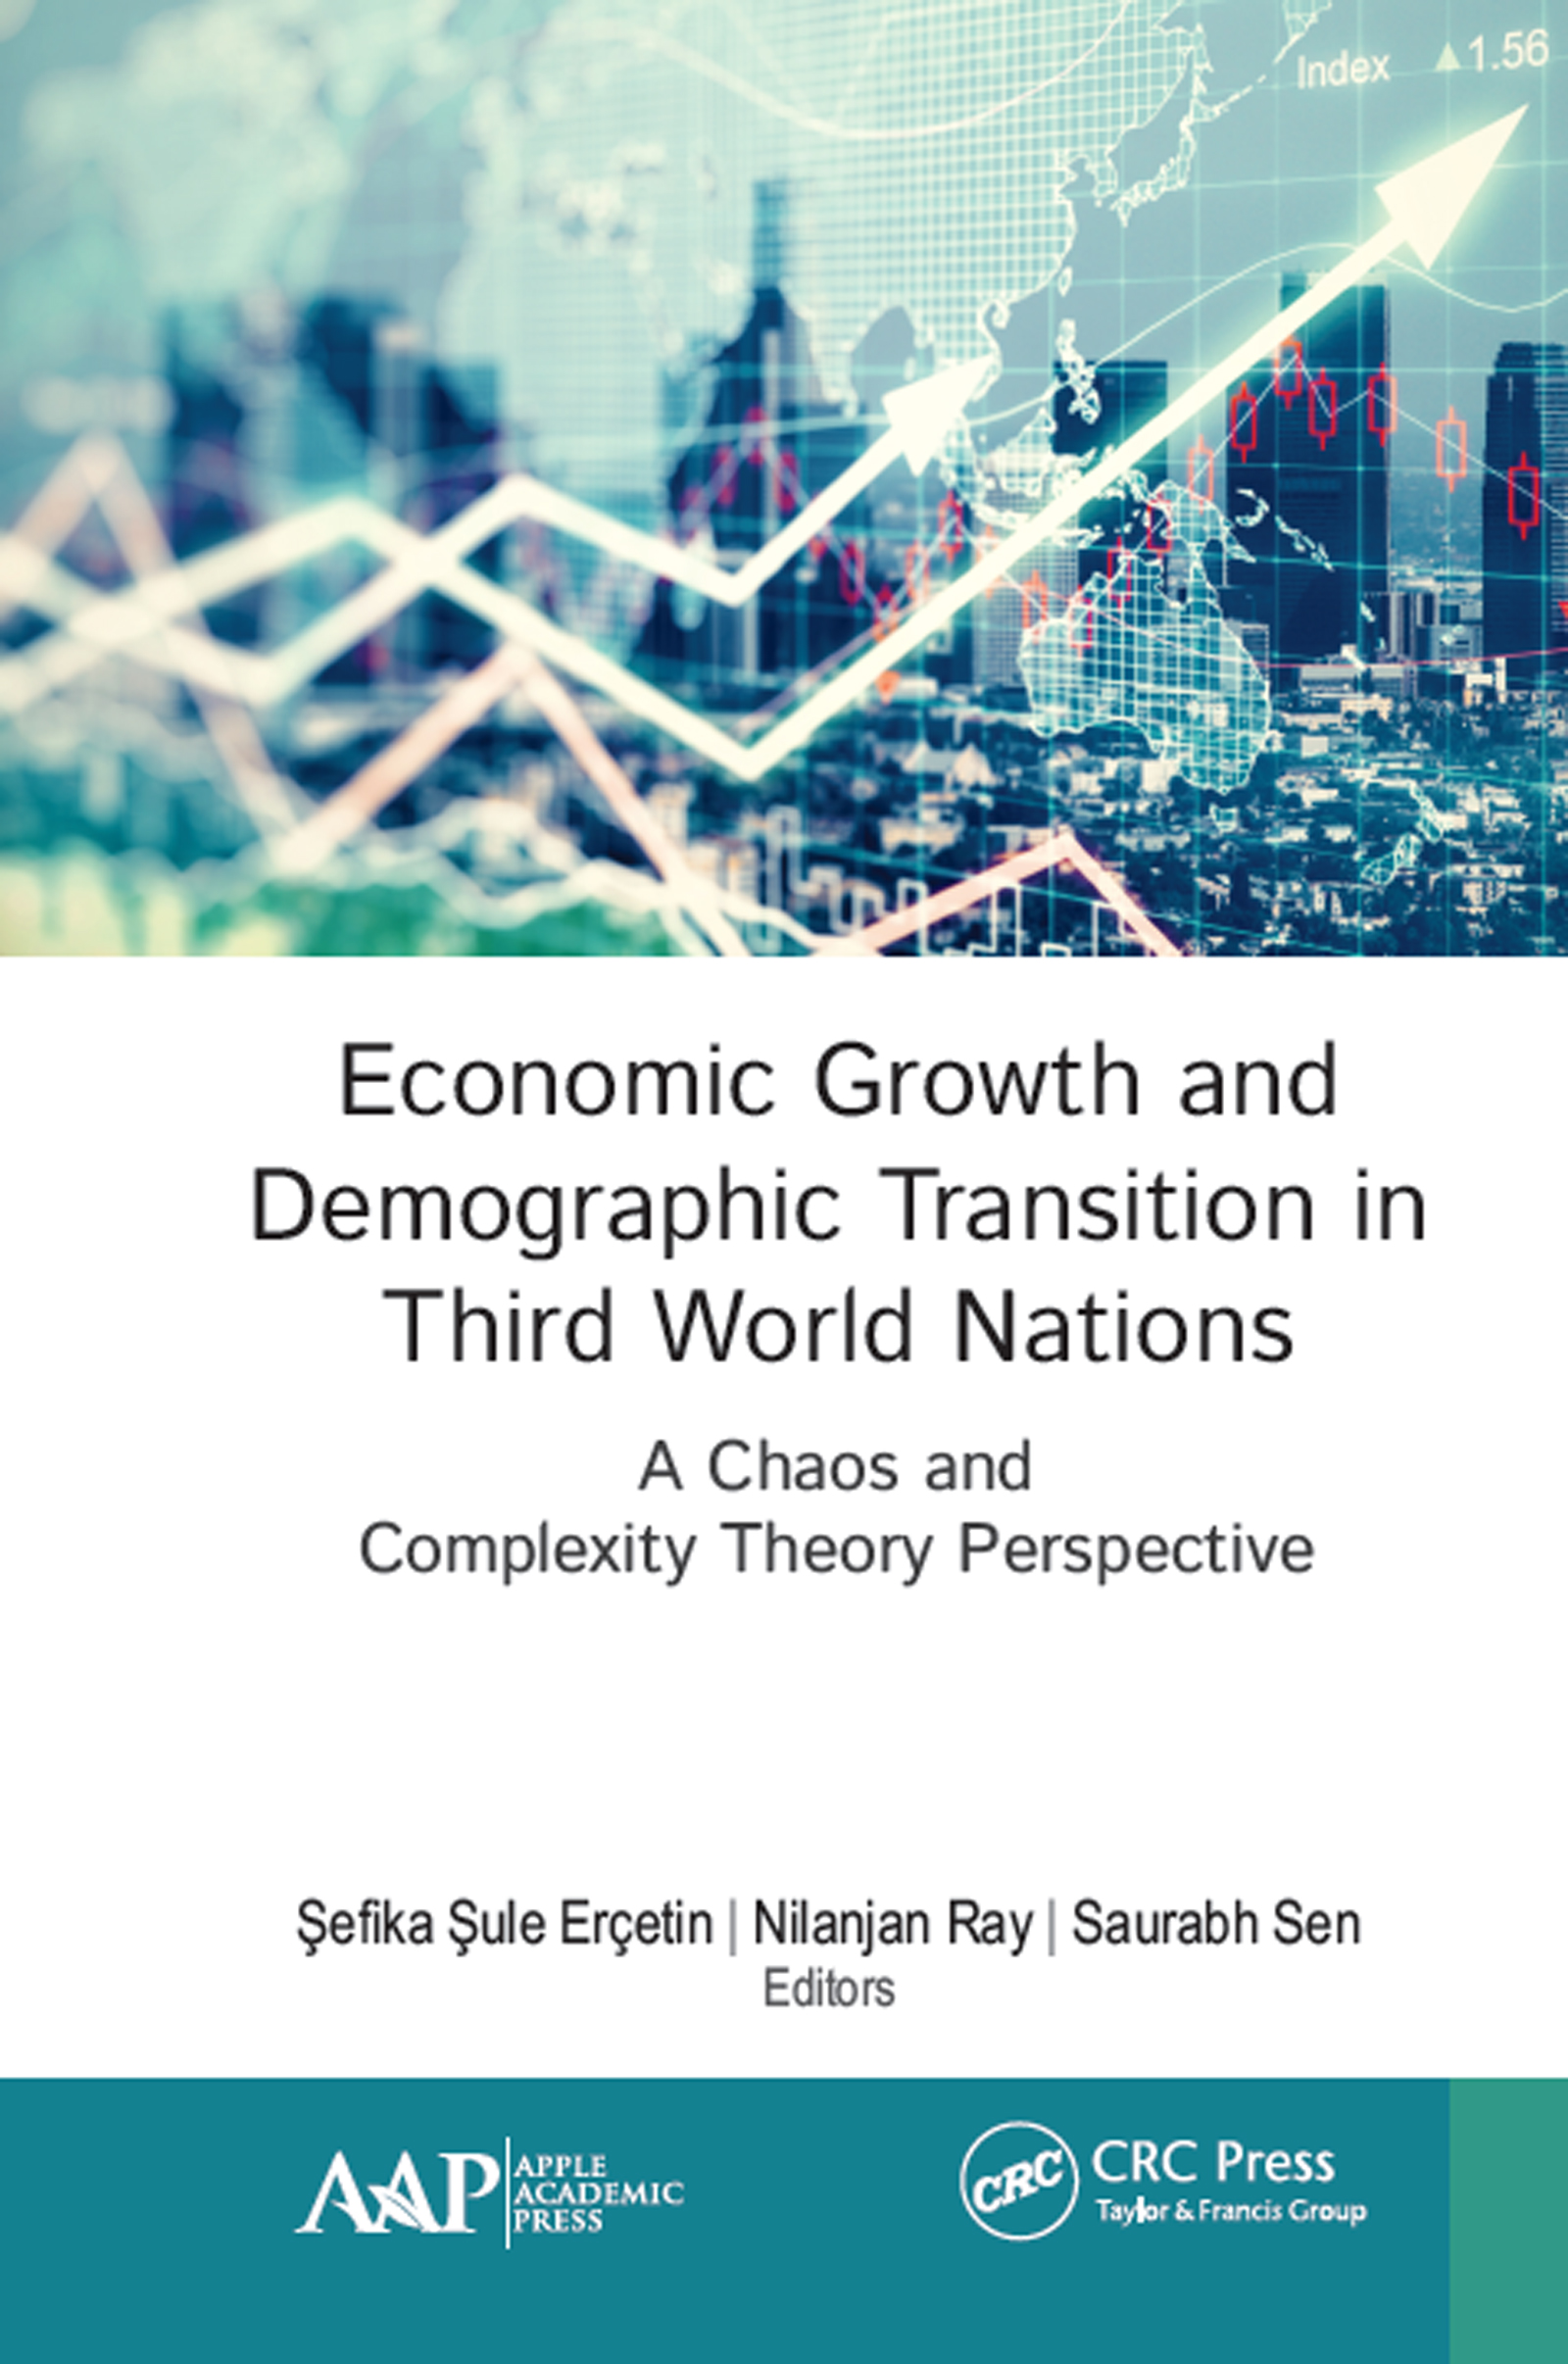 Economic Growth and Demographic Transition in Third World Nations: A Chaos and Complexity Theory Perspective book cover